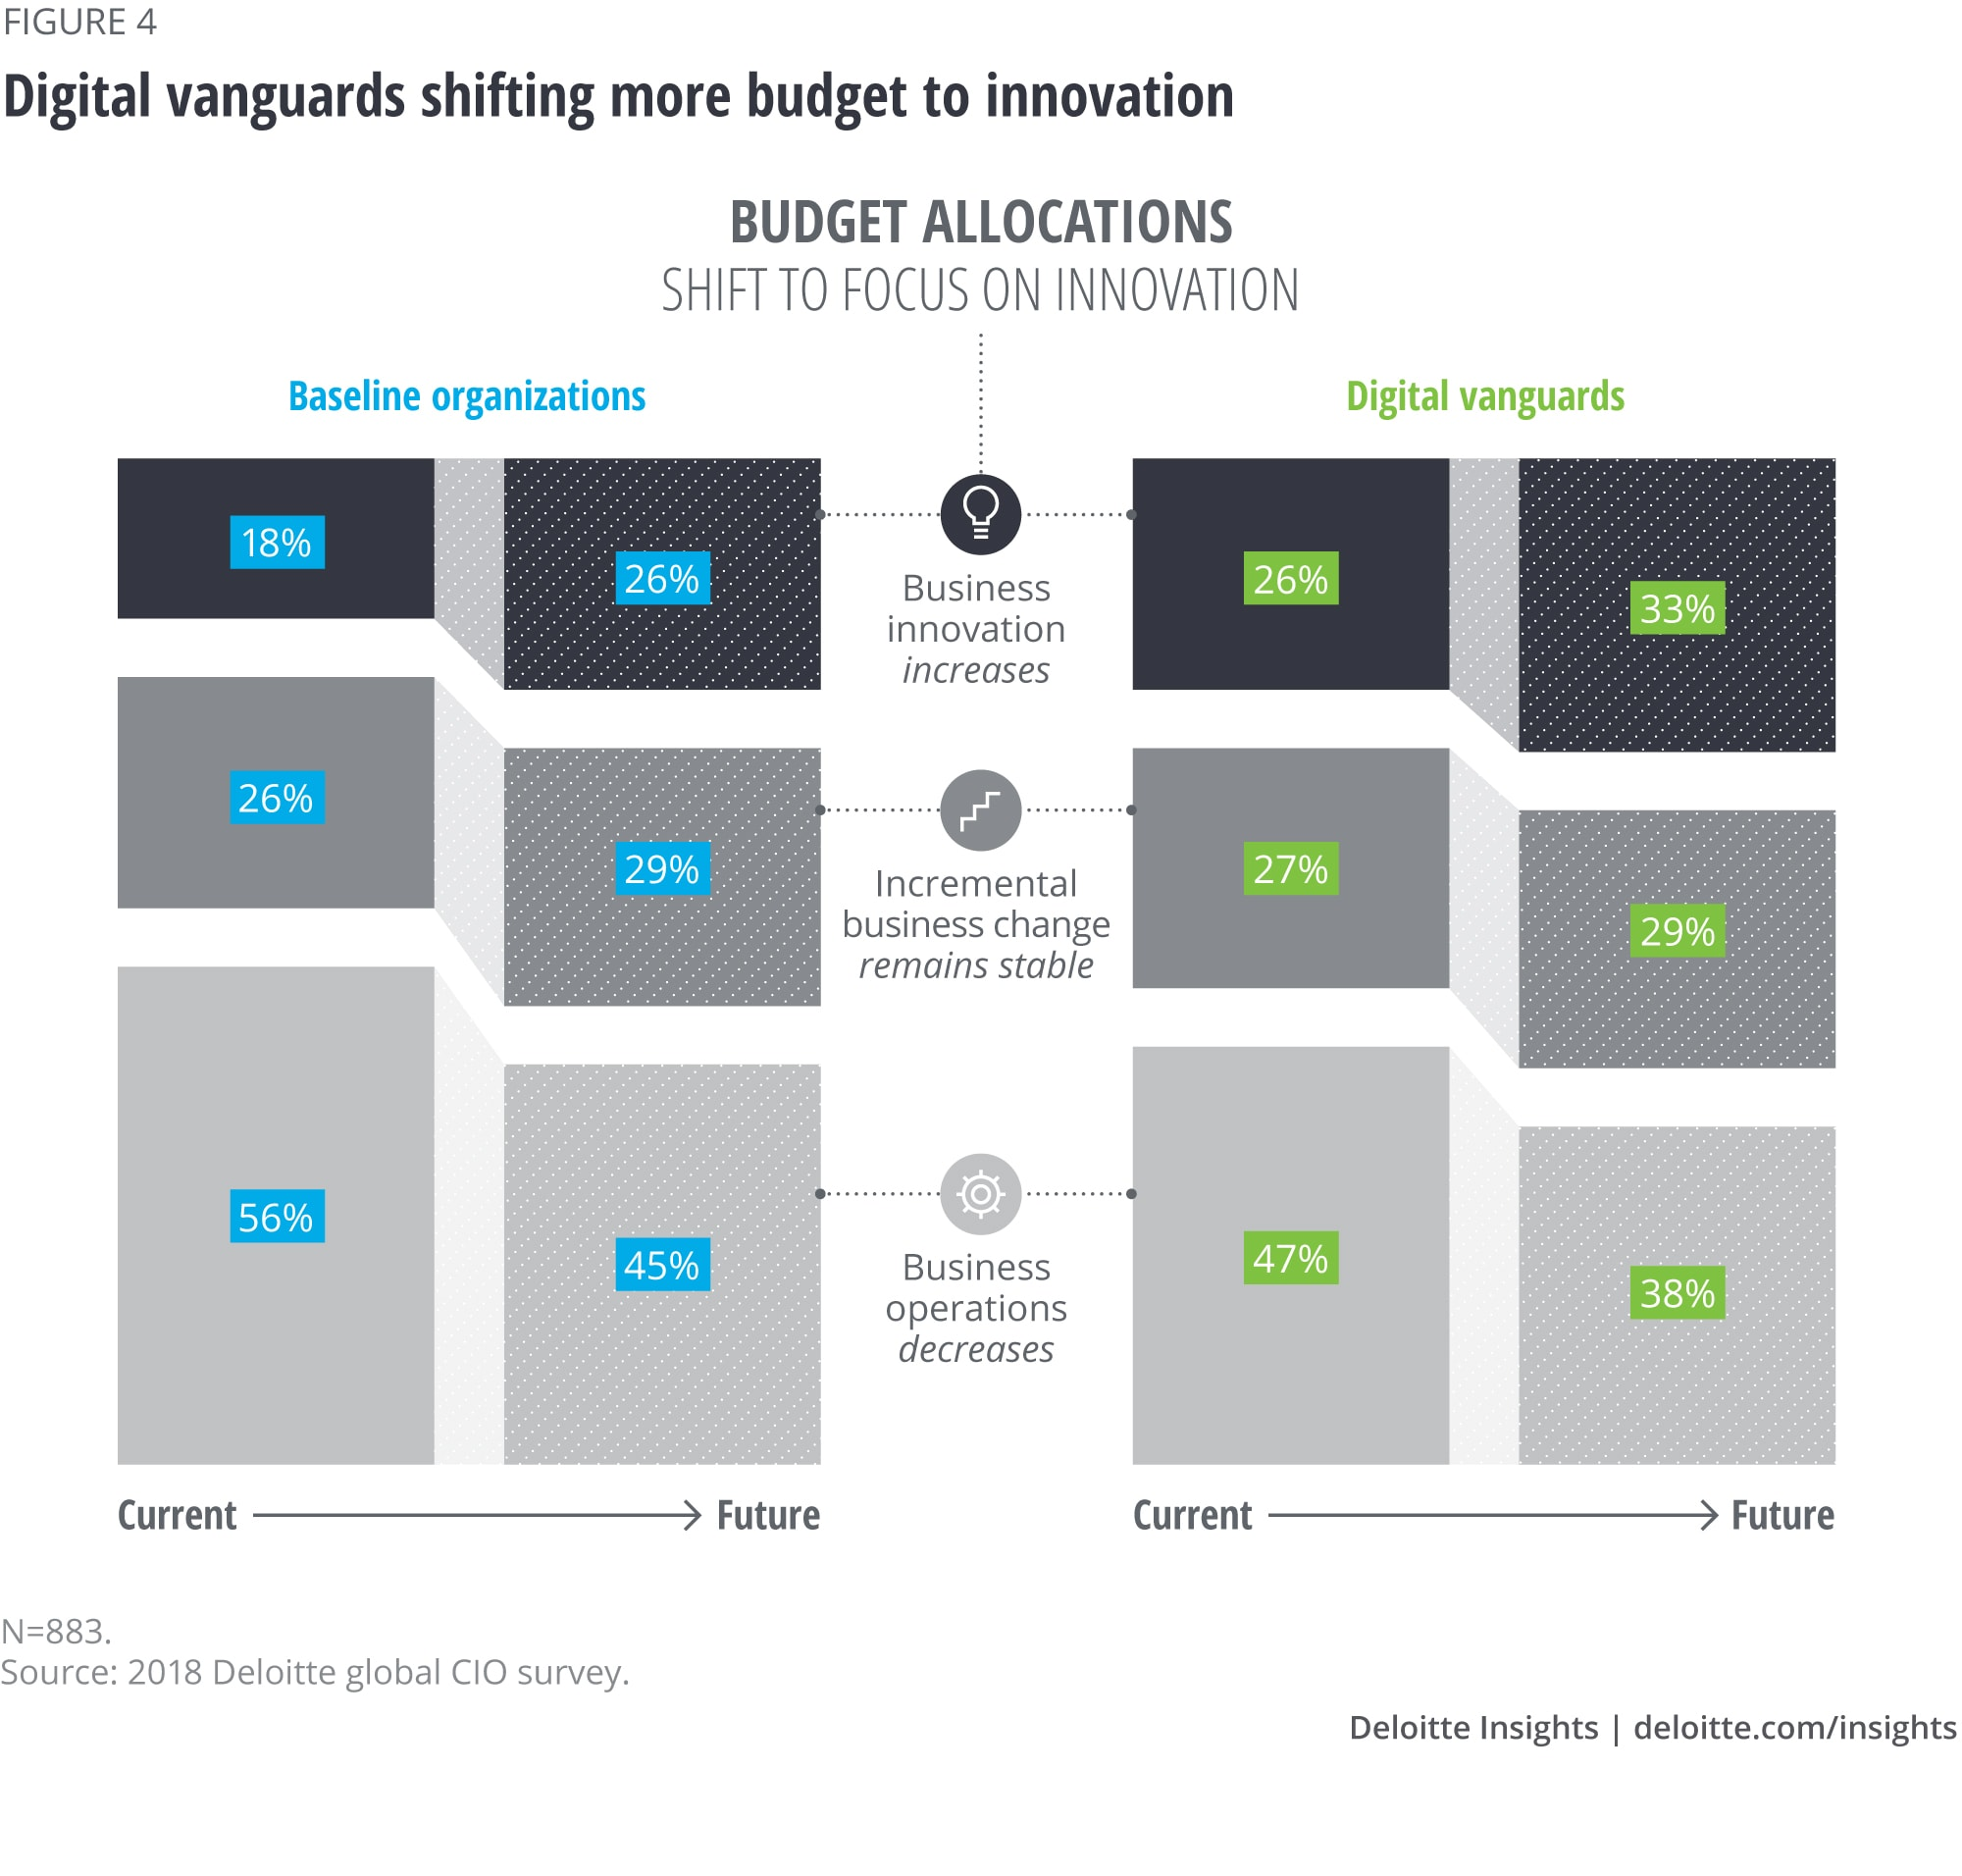 Digital vanguards shifting more budget to innovation